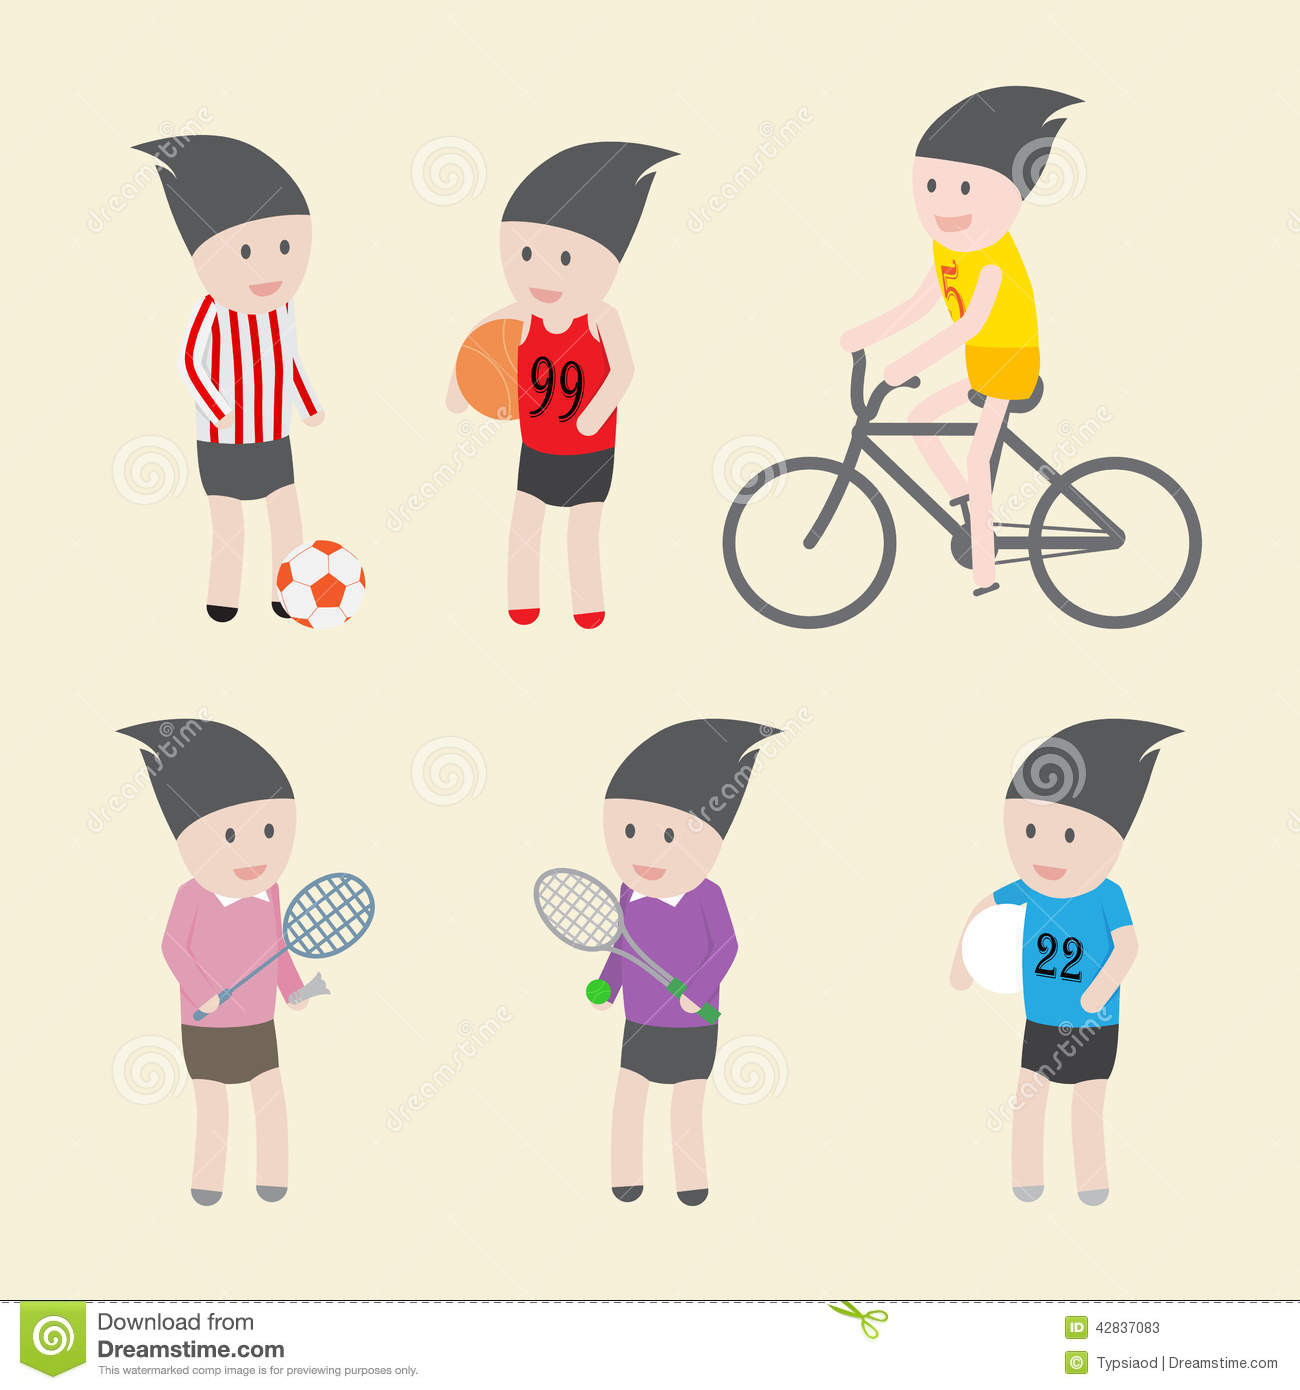 Character Design Icon : Sport icon and character design stock vector image